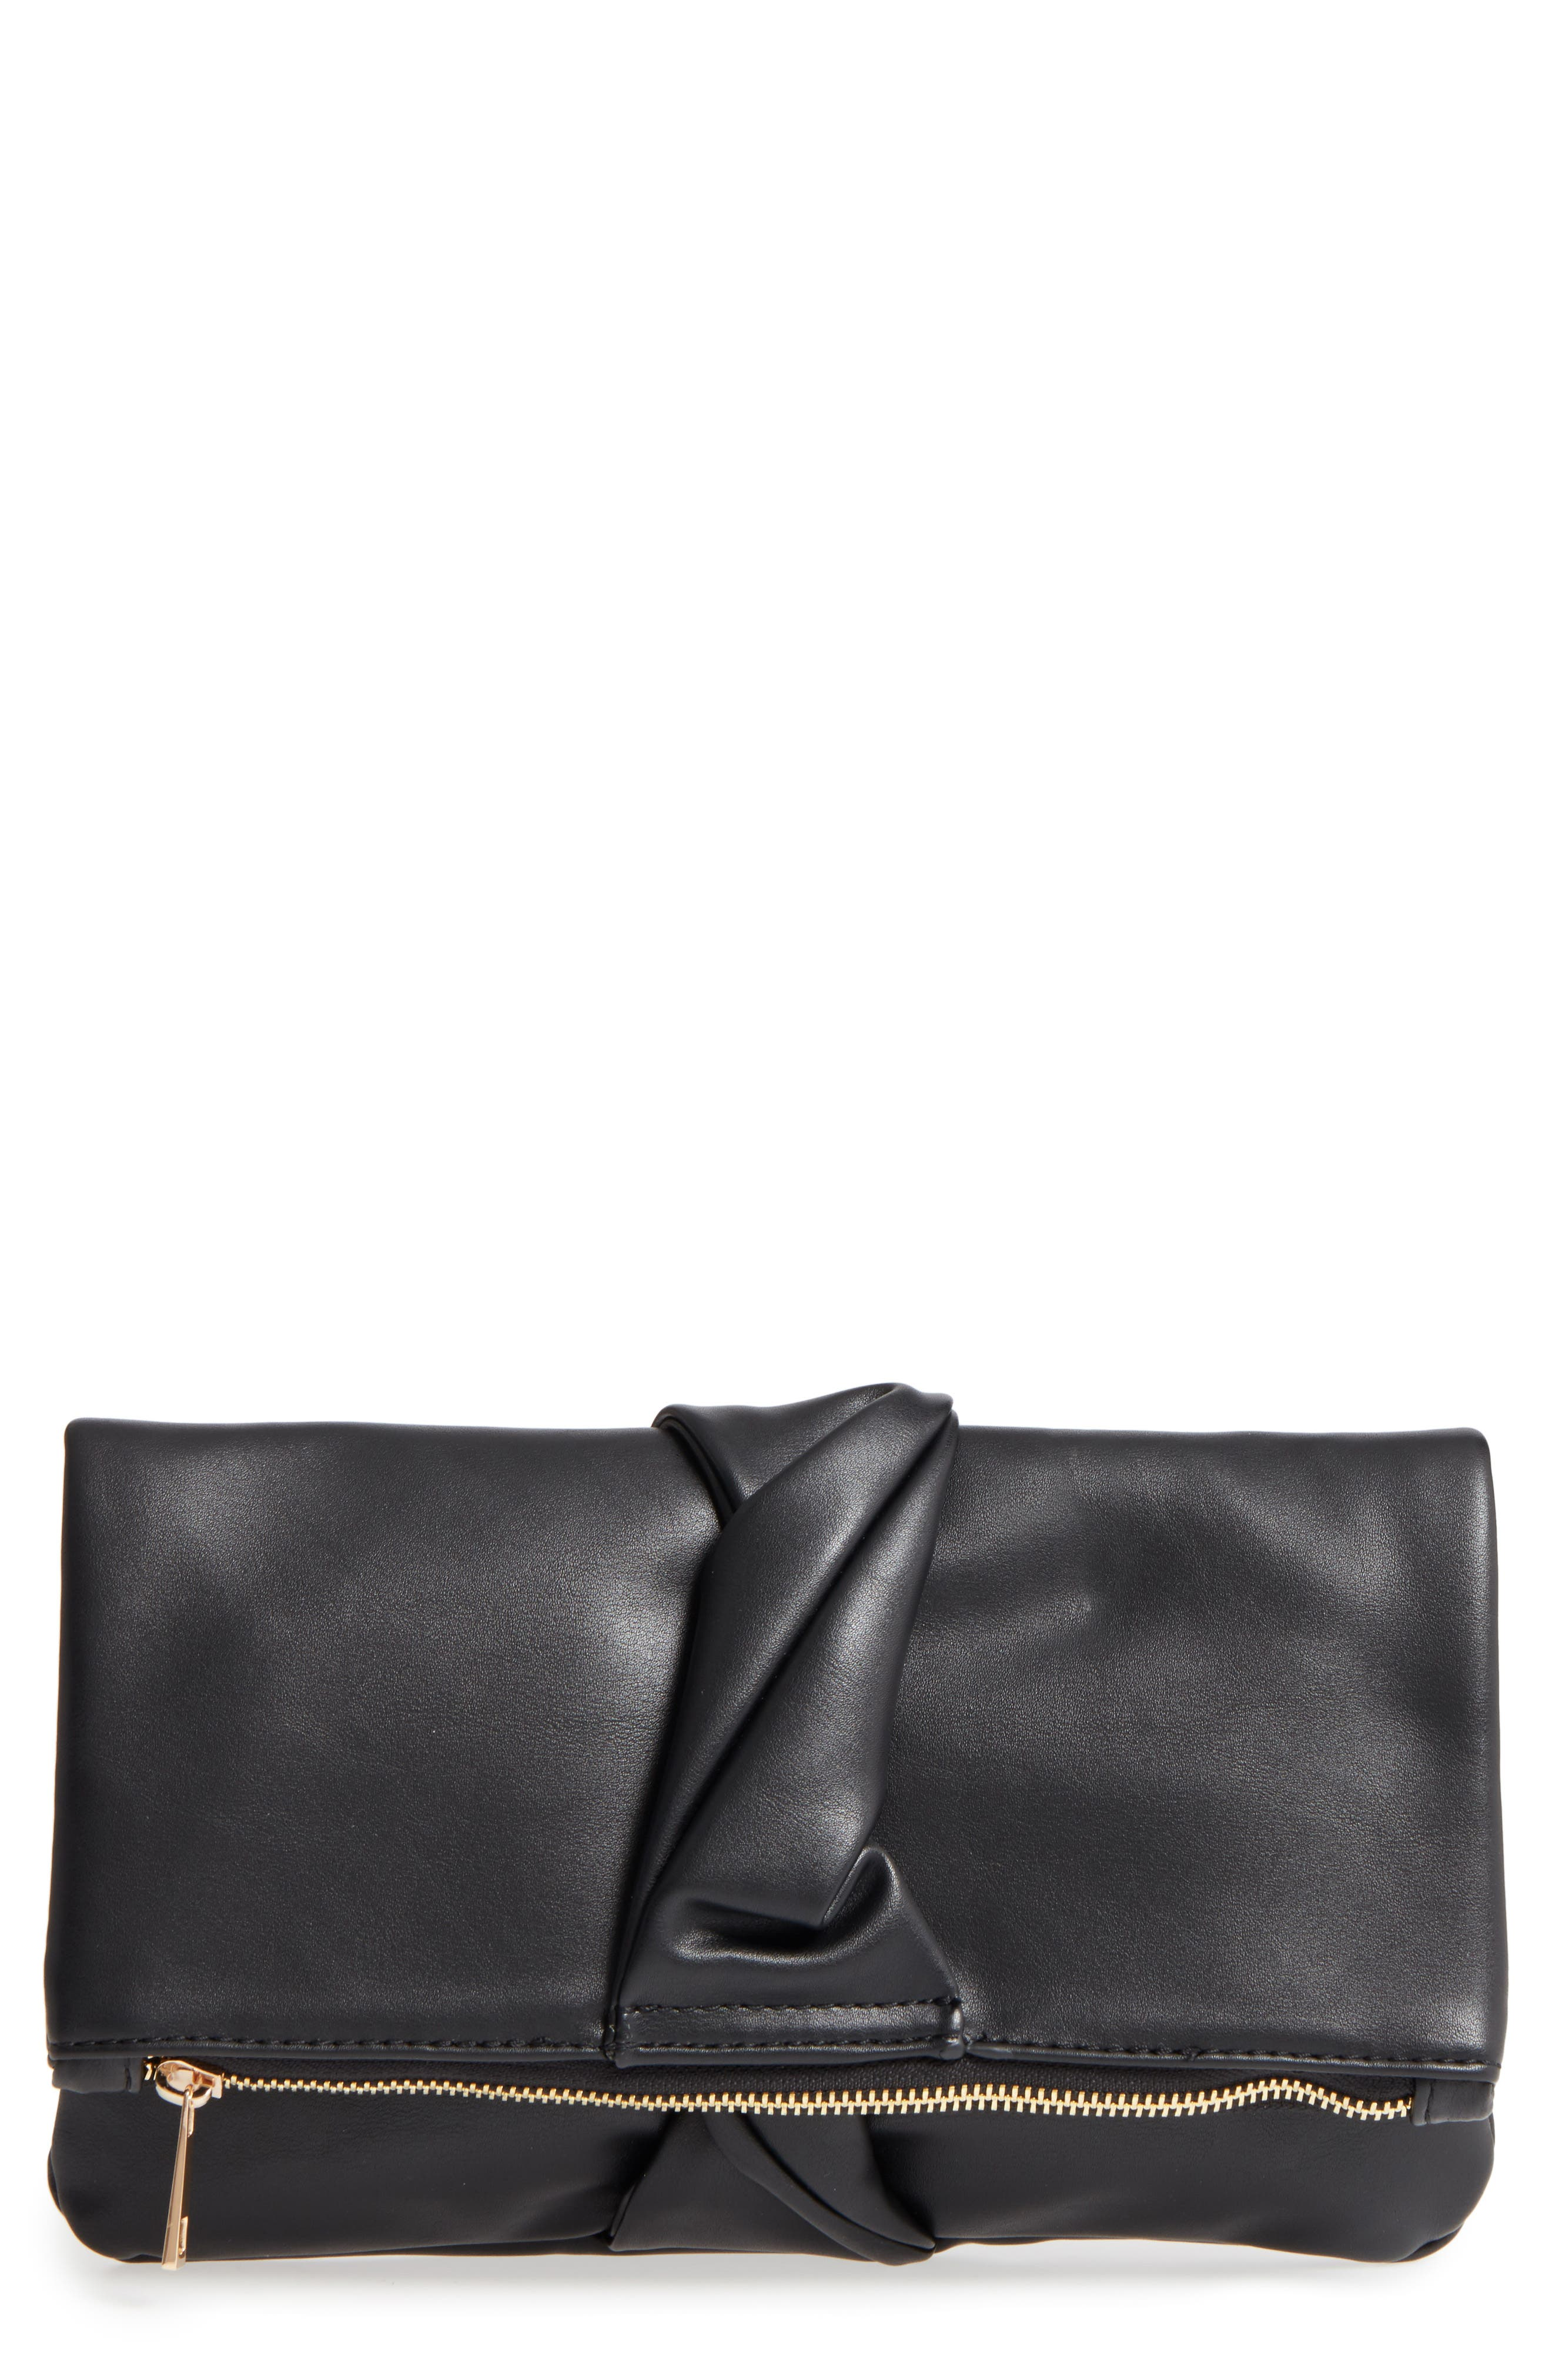 Main Image - Sole Society Lenore Foldover Faux Leather Clutch